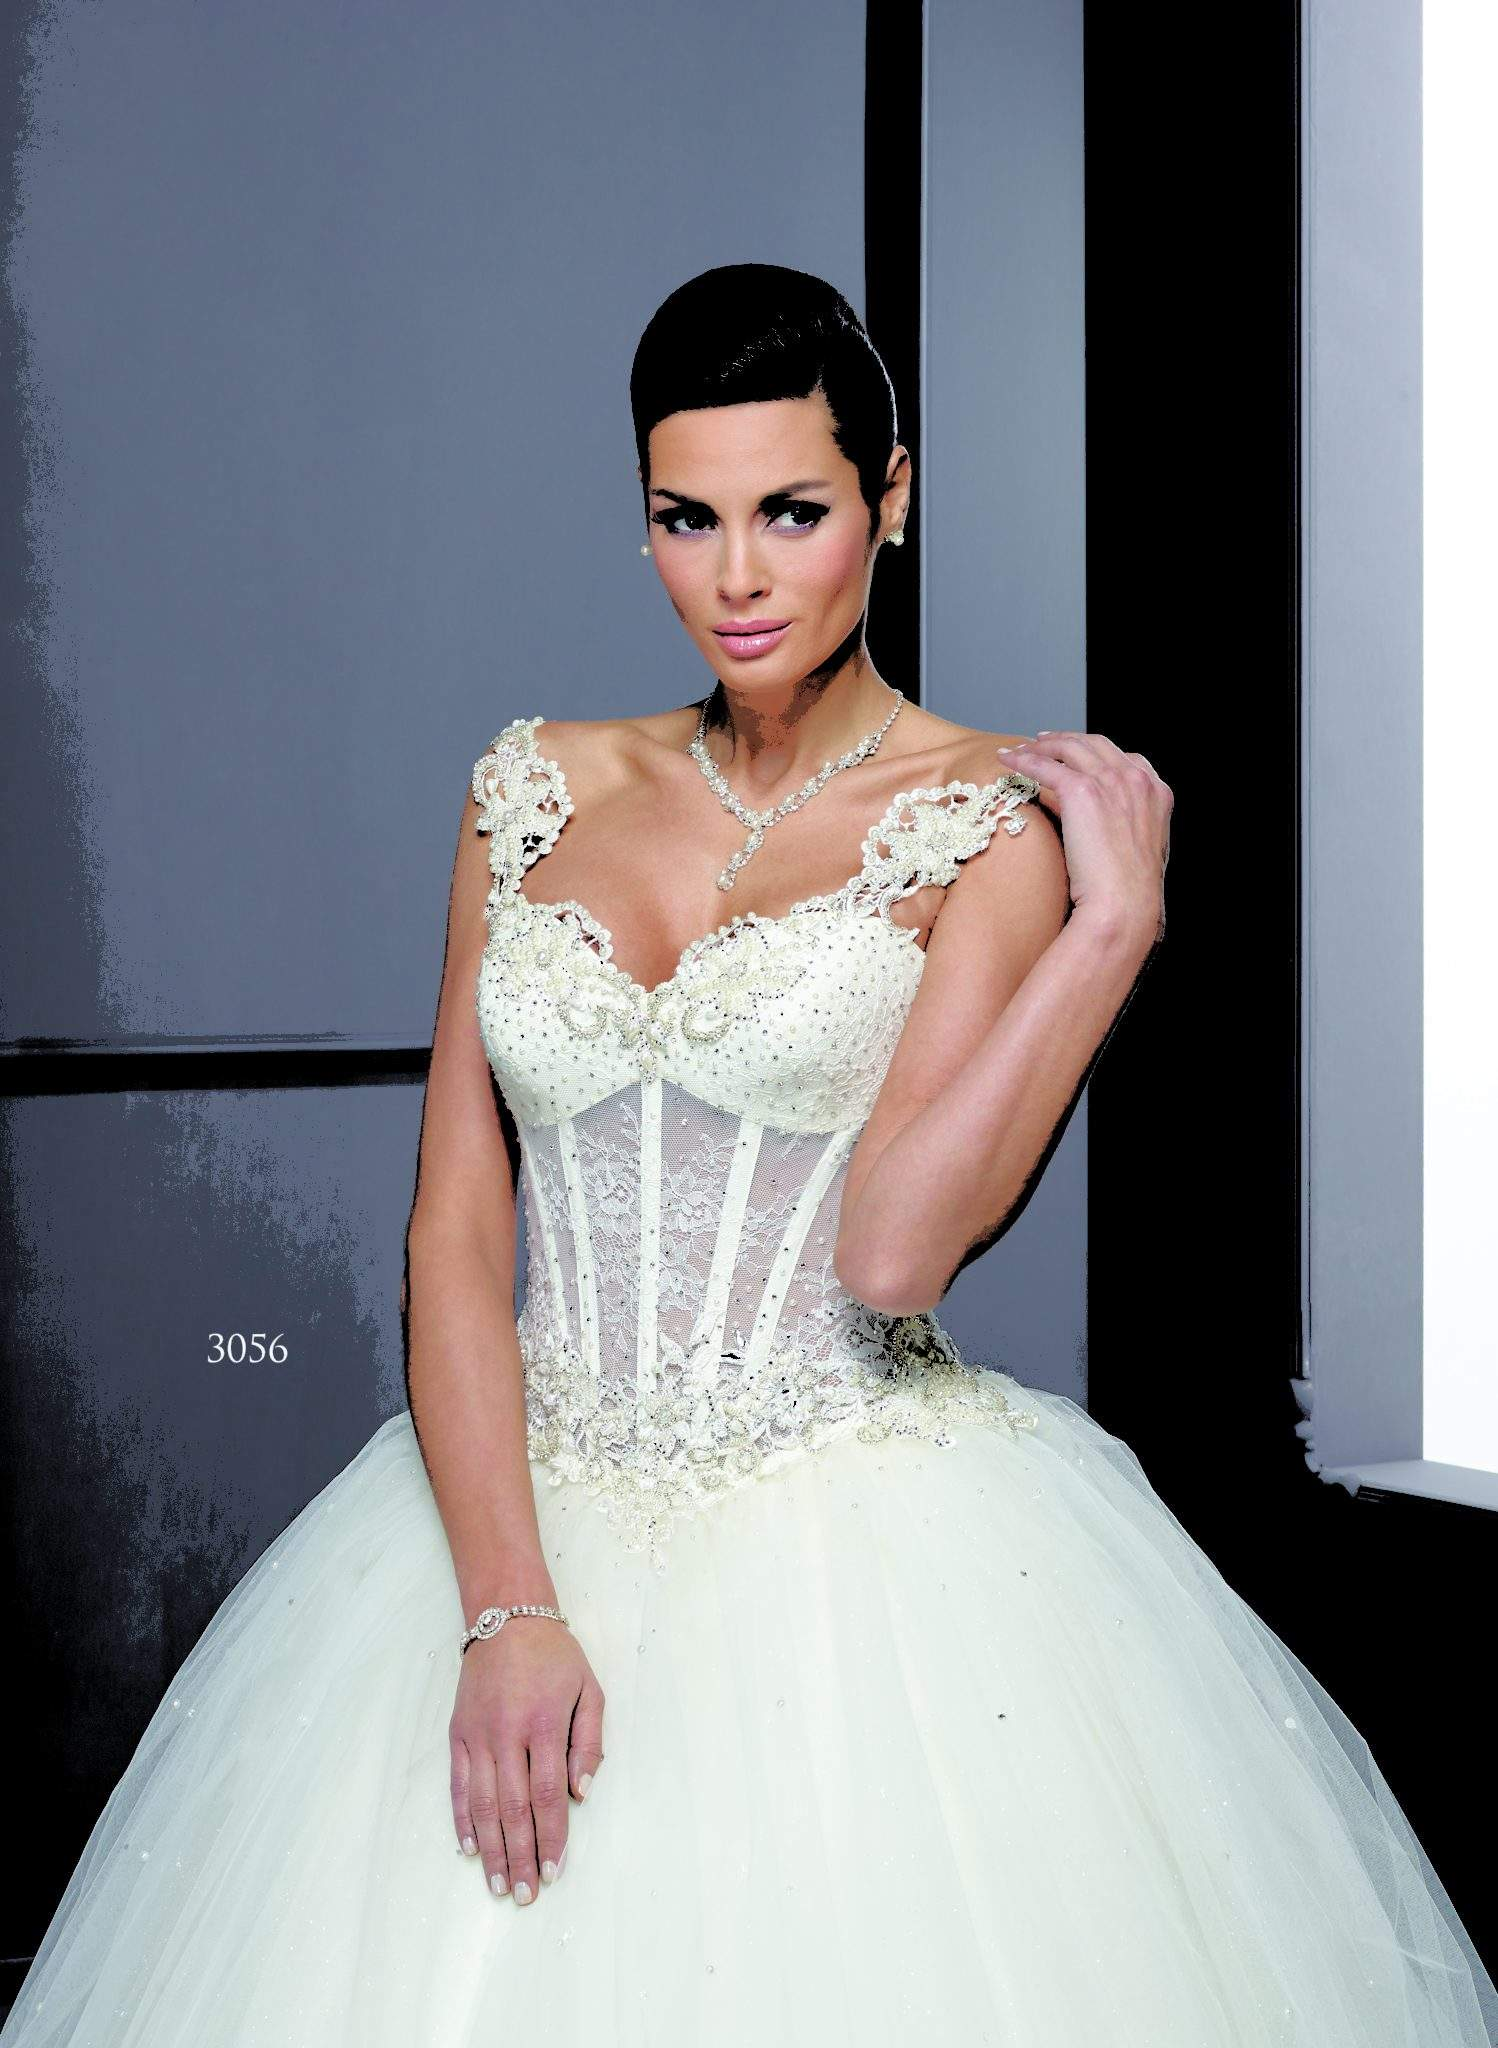 Custom Wedding Dresses And Bridal Gowns From The Usa